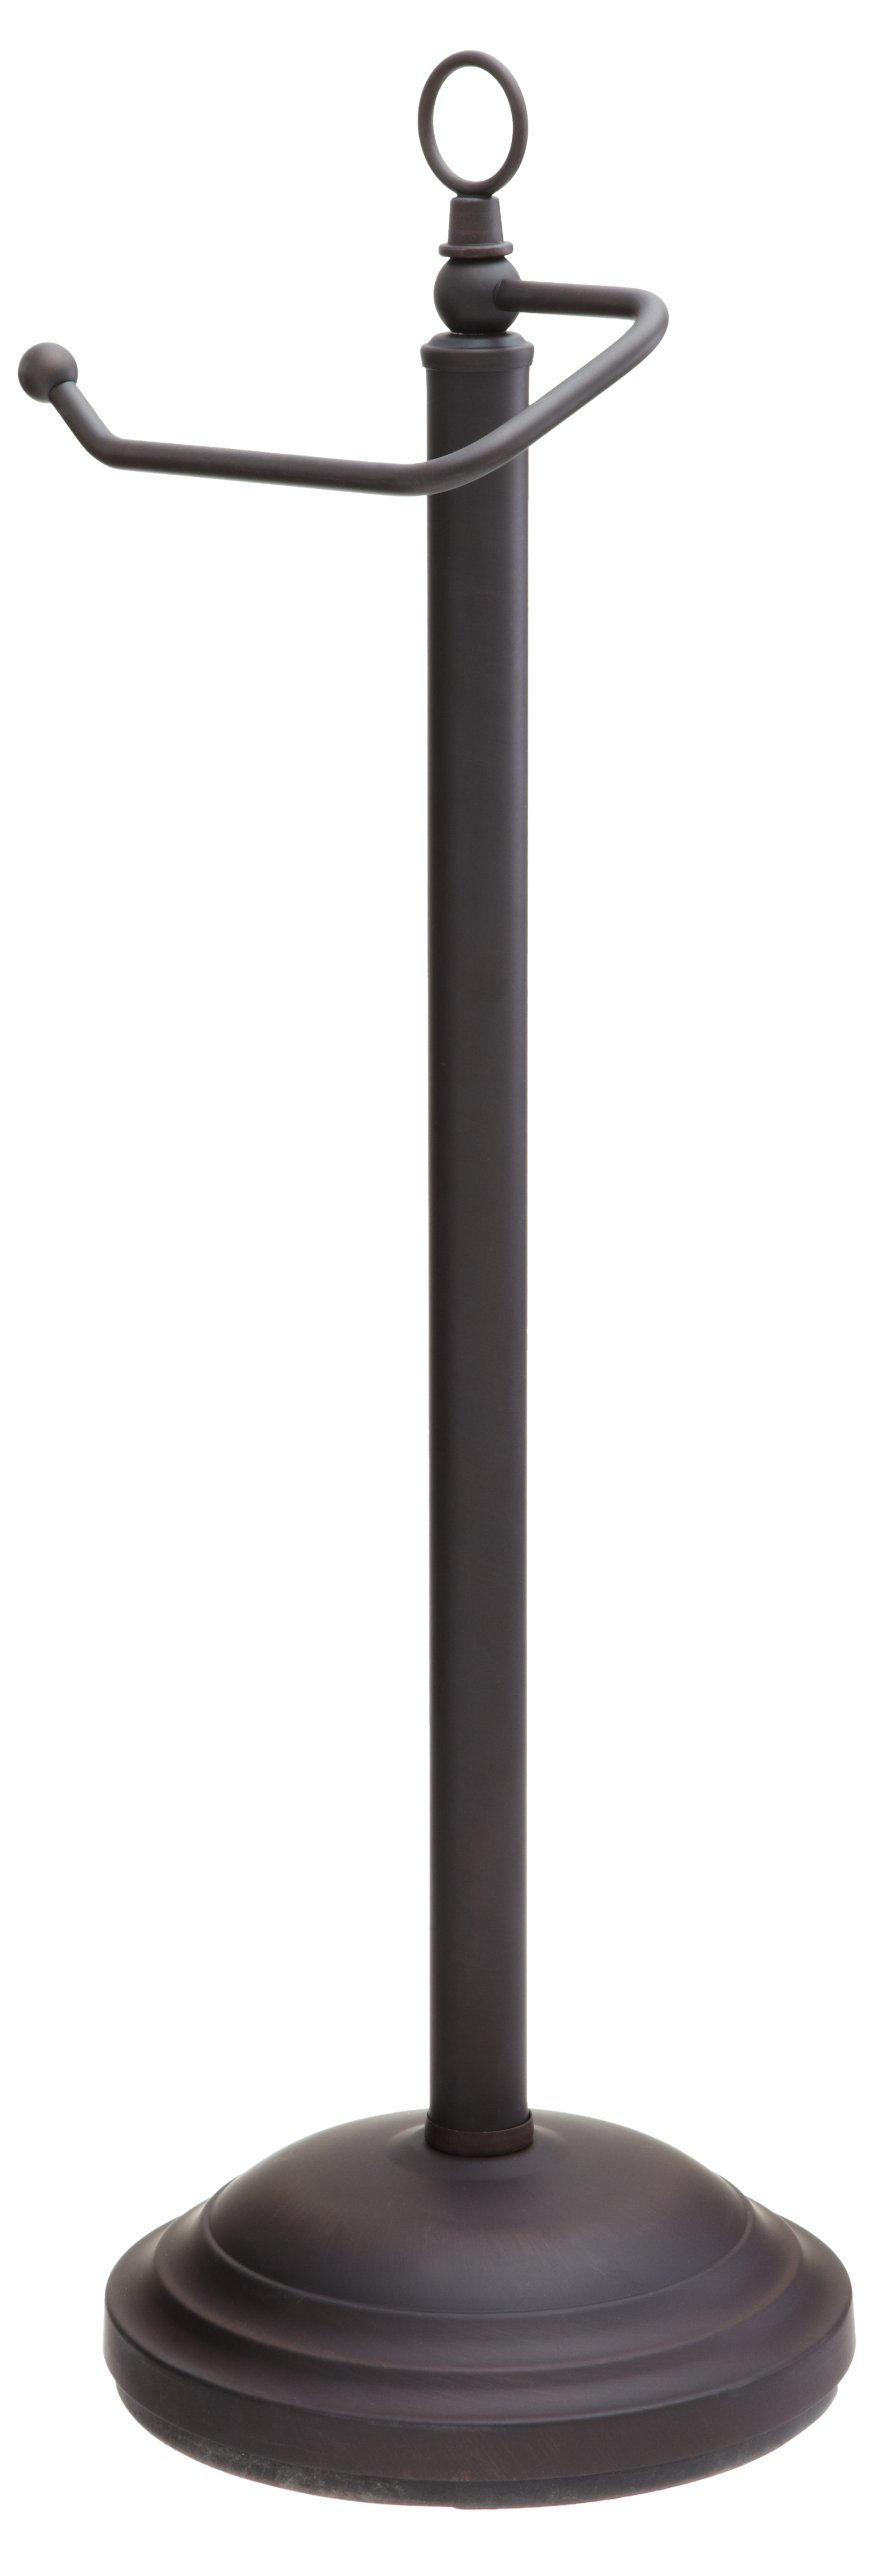 Taymor Oil Rubbed Bronze European Pedestal Toilet Tissue Holder with Decorative Finial